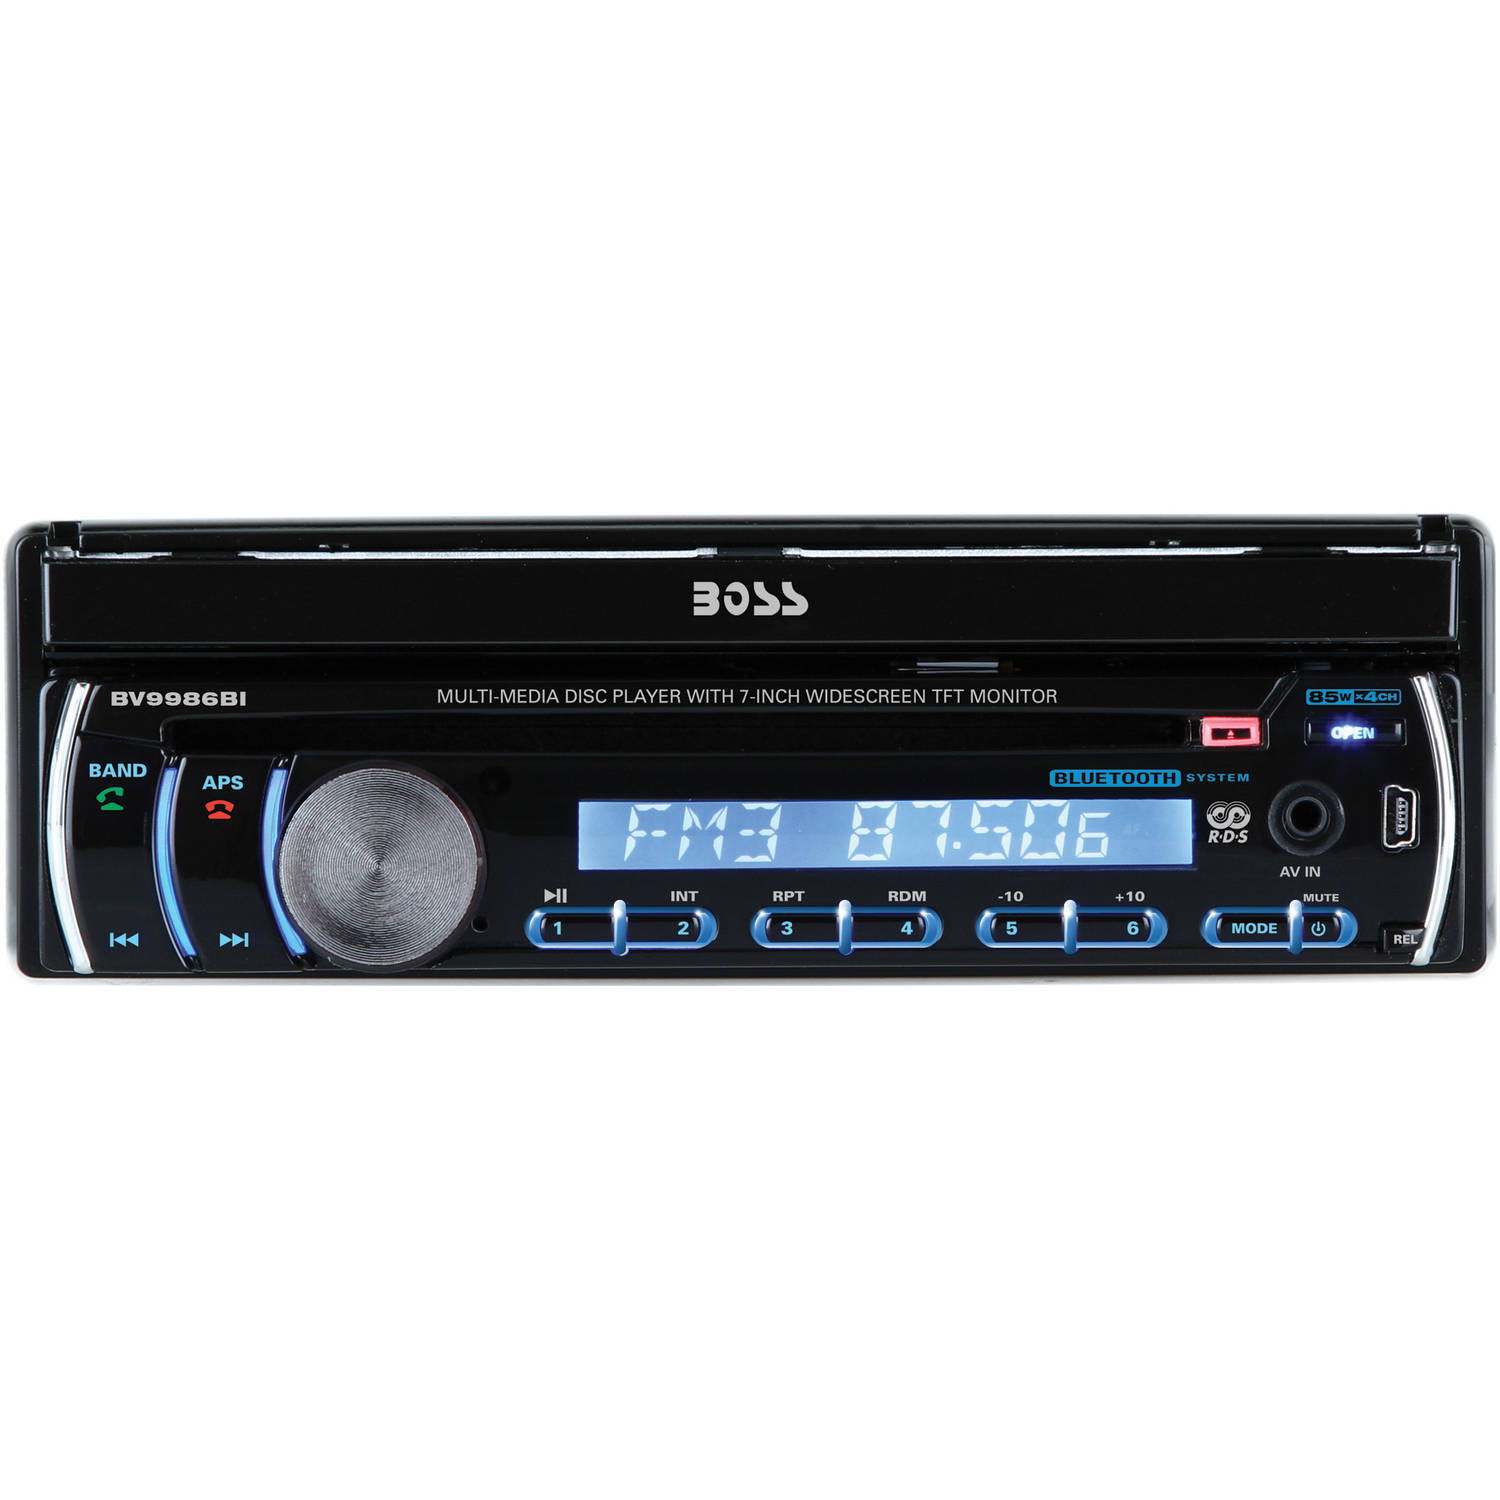 "Boss Audio BV9986BI Single-DIN In-Dash DVD/CD Receiver with 7"" LCD and Built-in Bluetooth"